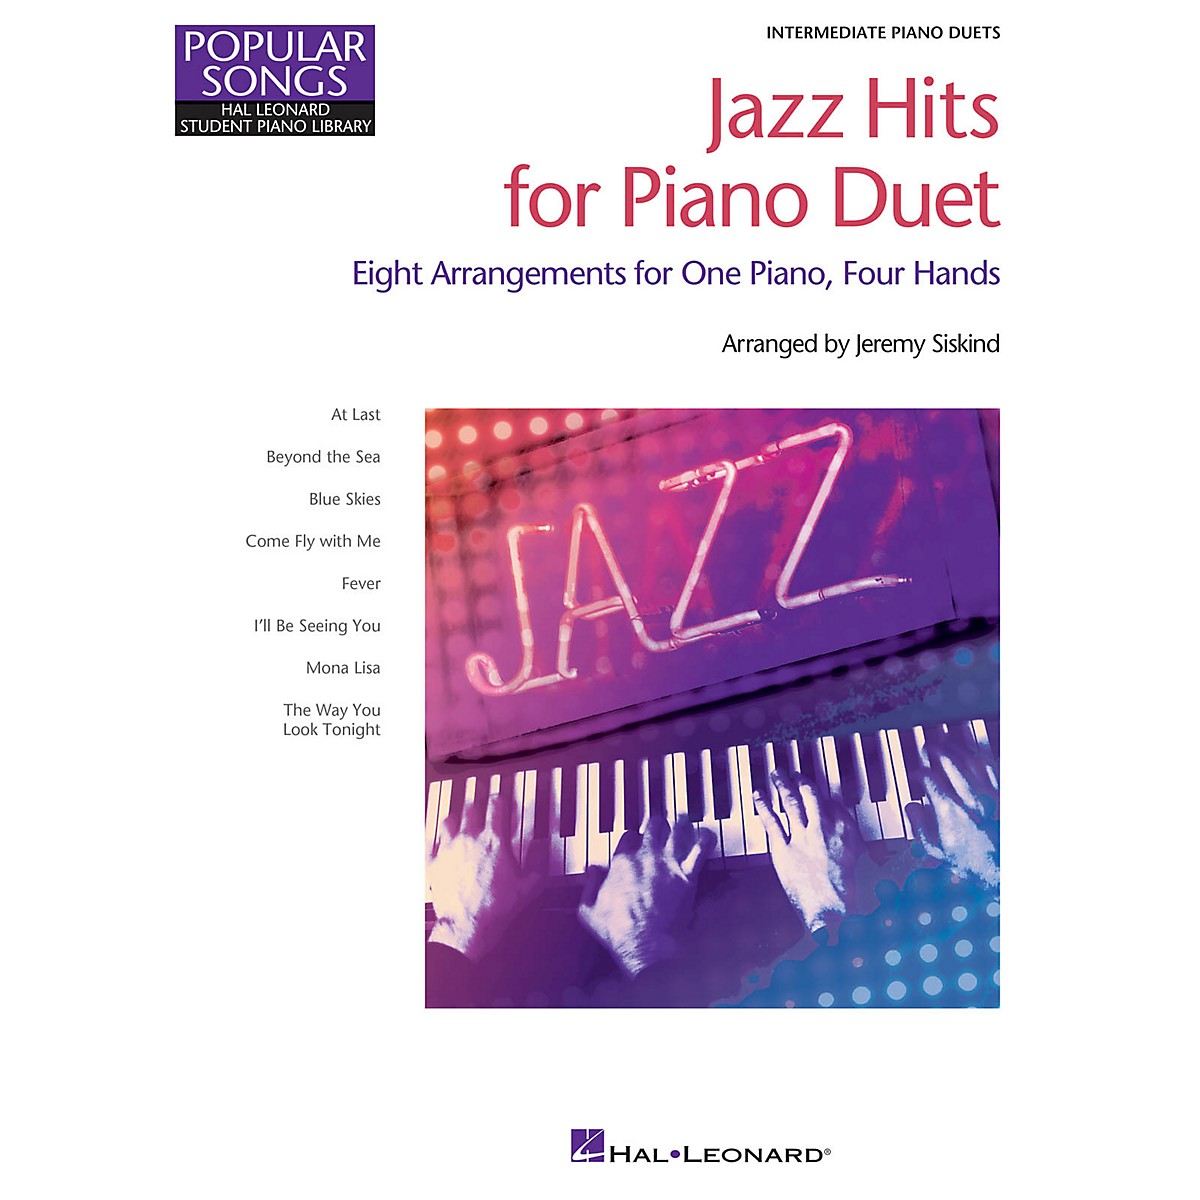 Hal Leonard Jazz Hits for Piano Duet Piano Library Series Book by Various (Level Inter)